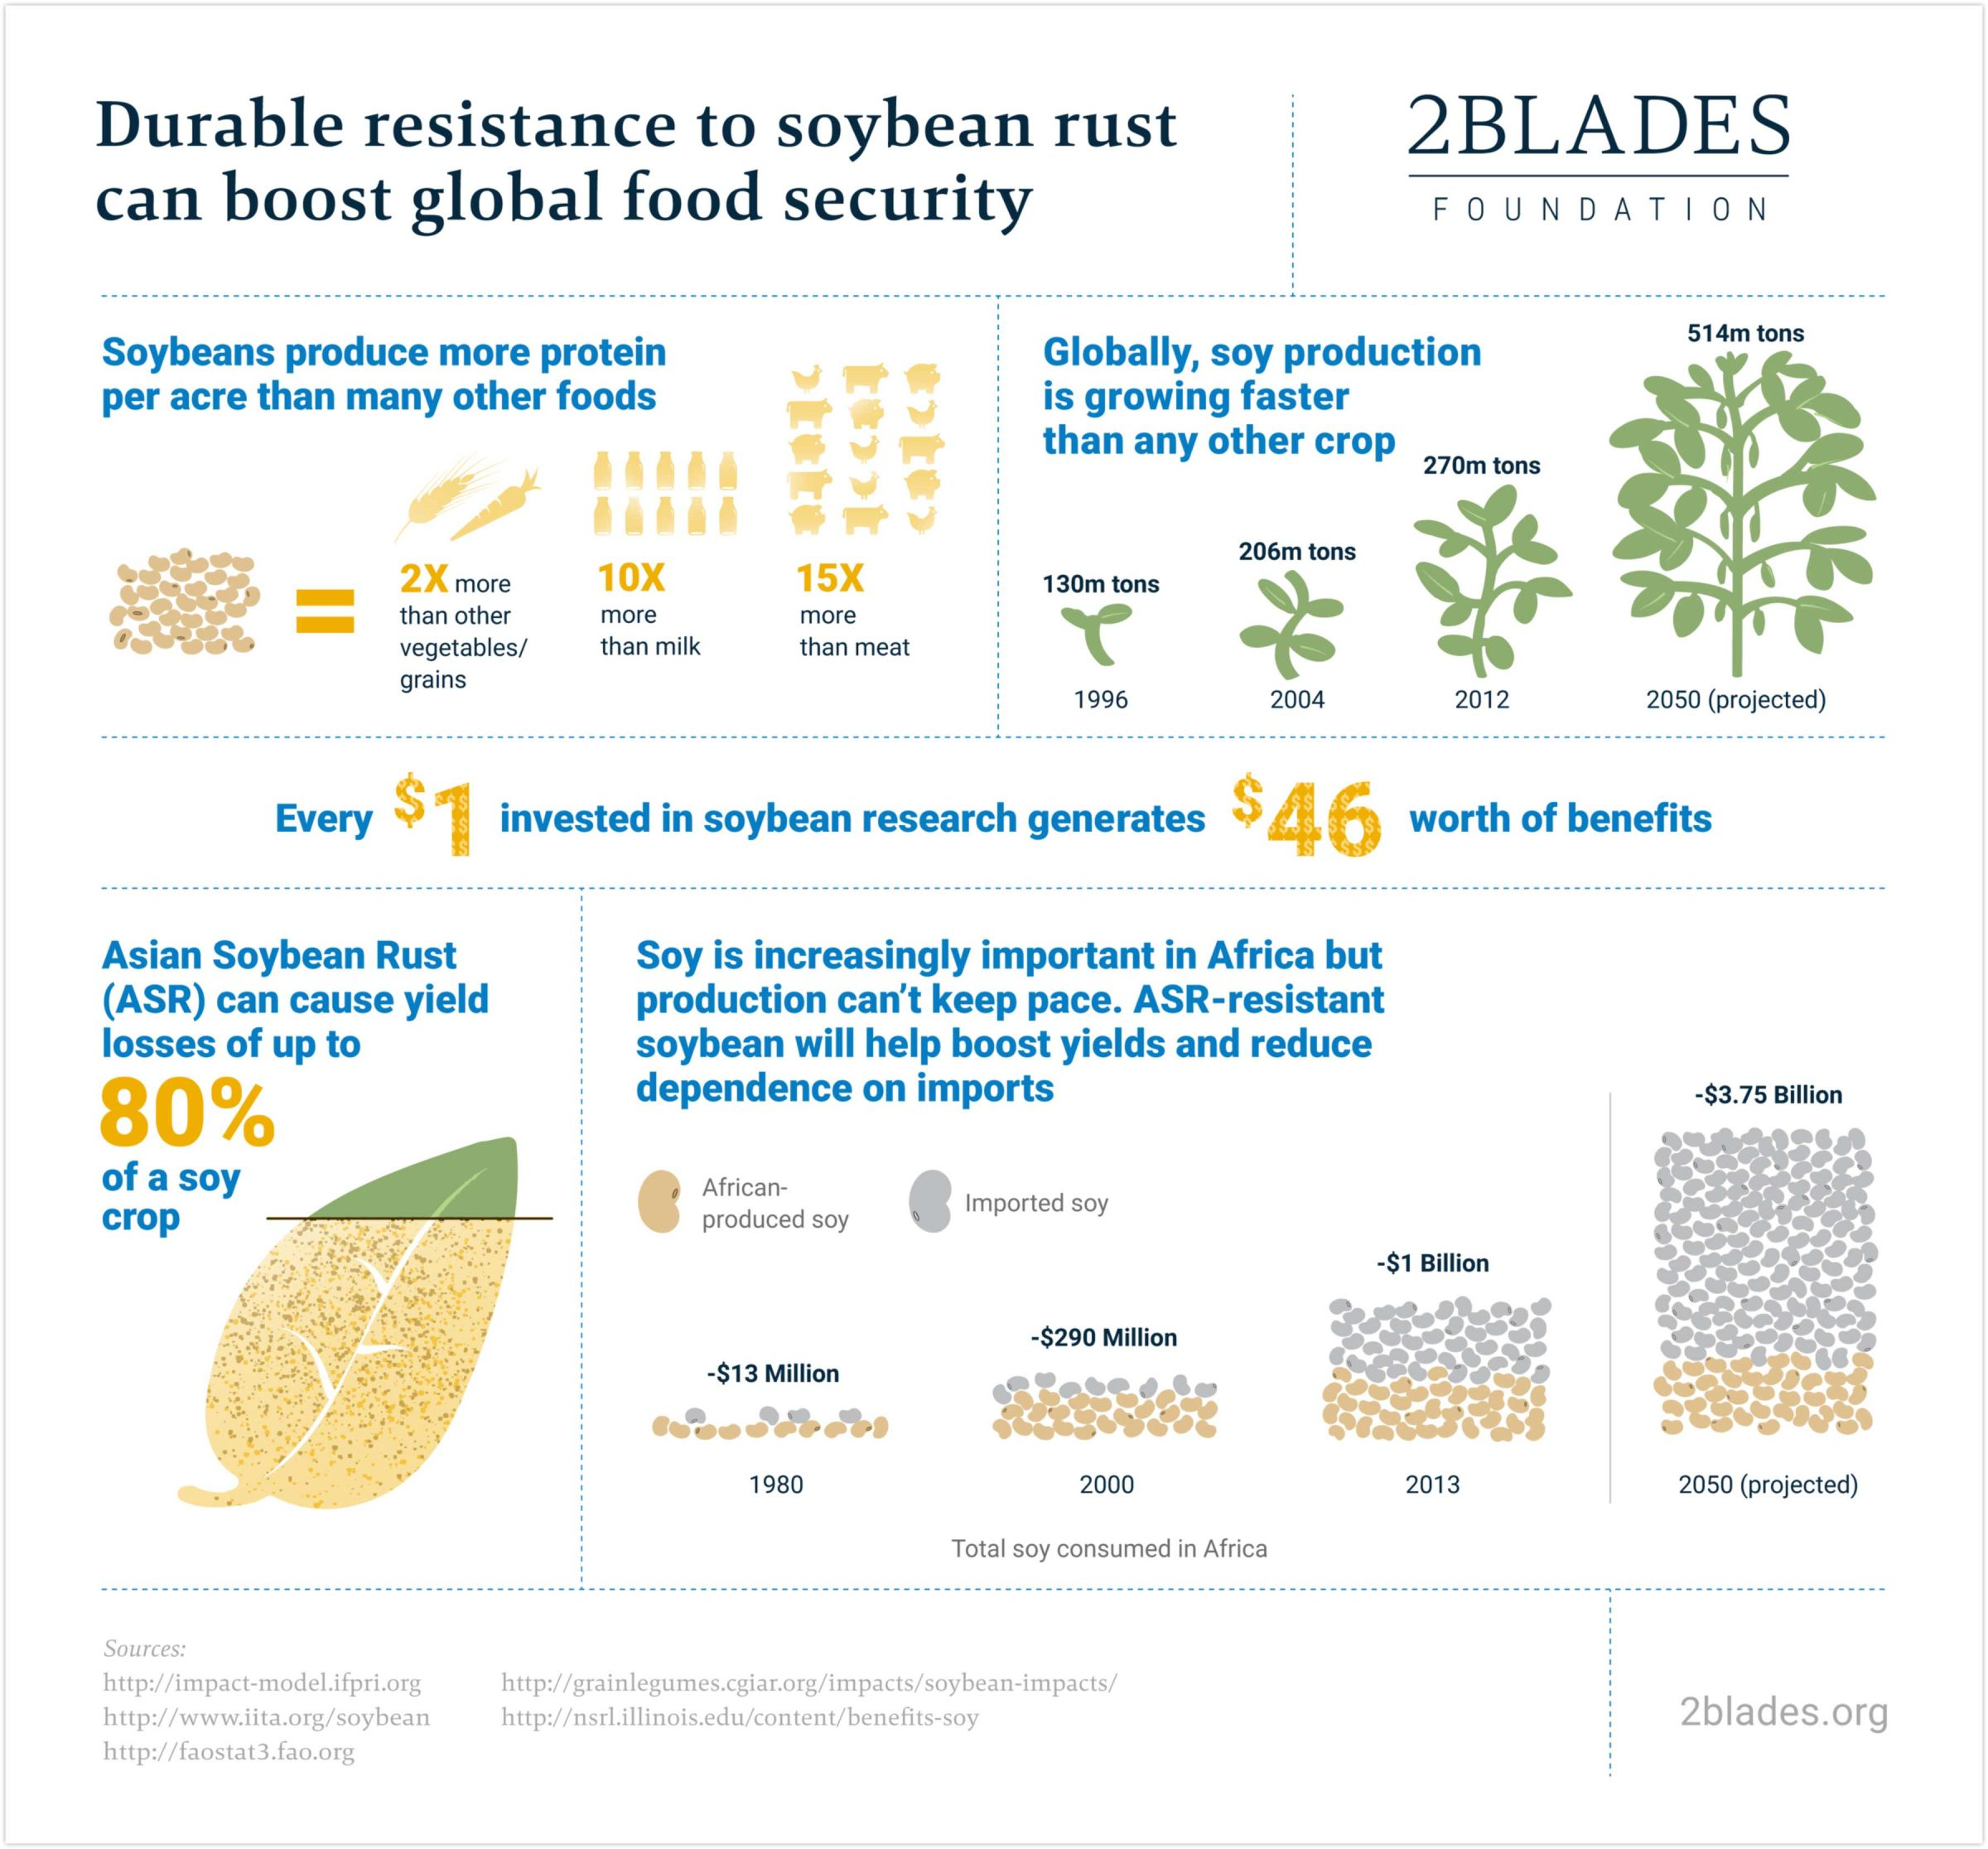 Soybean rust infographic